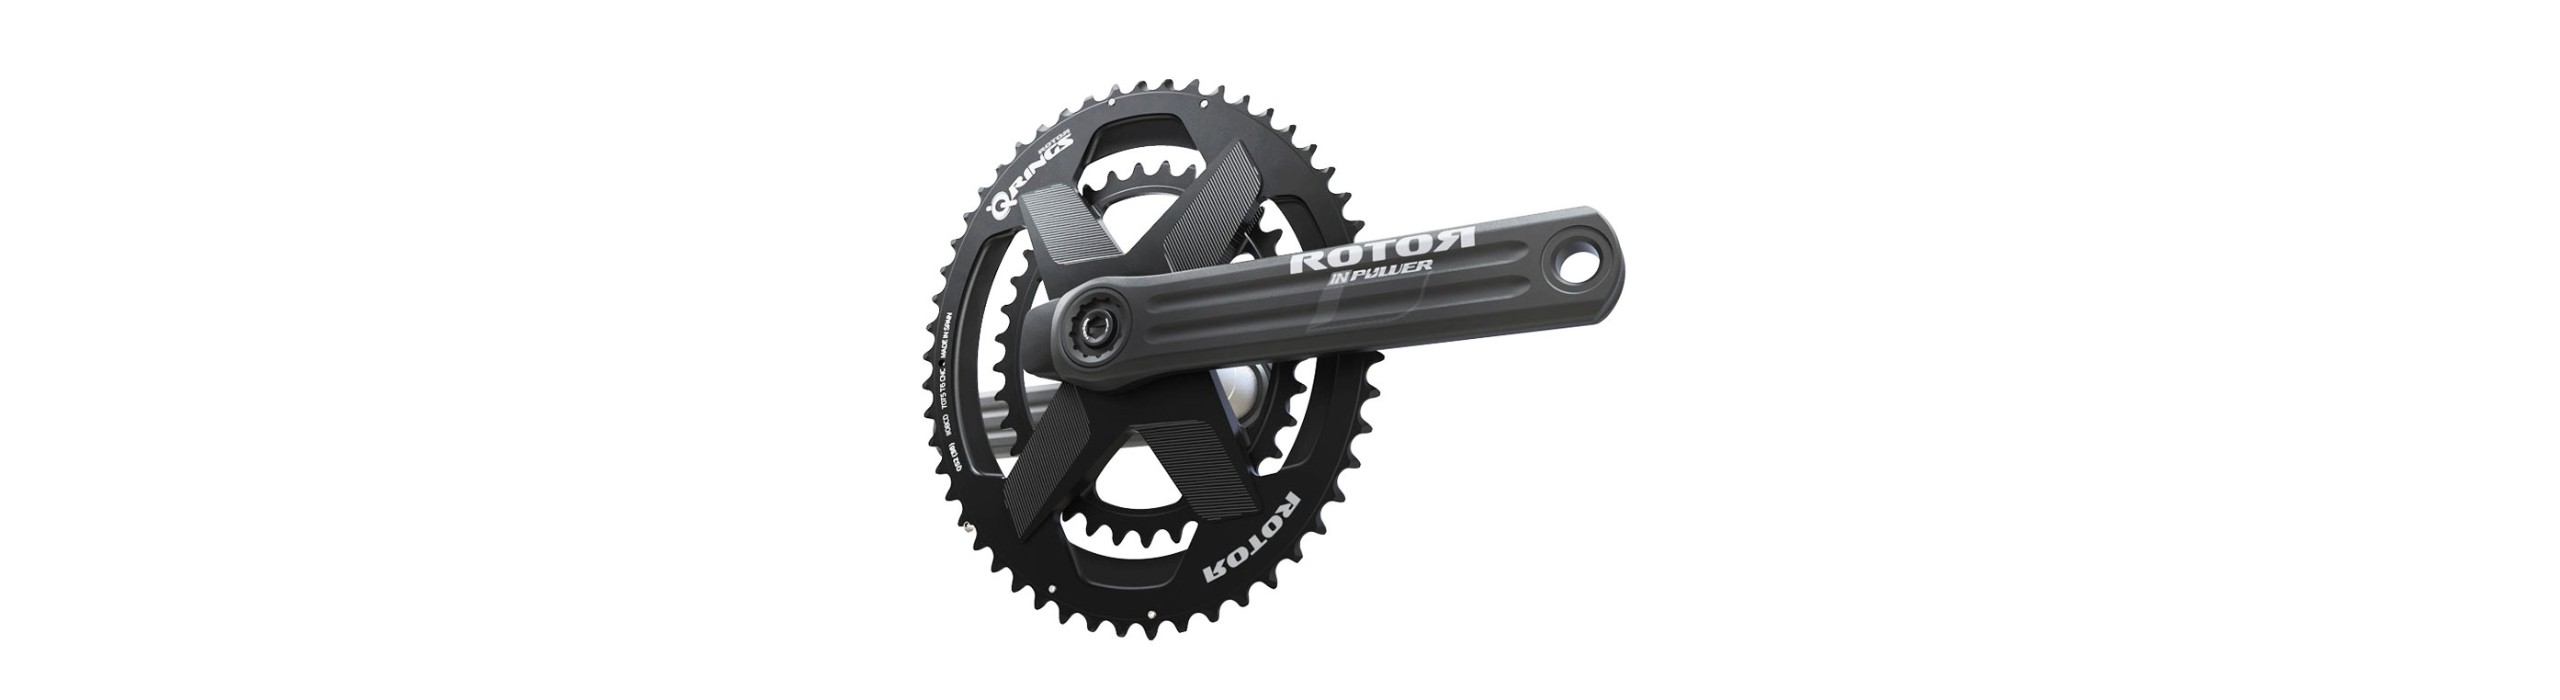 INpower DM Road Crankset Kit